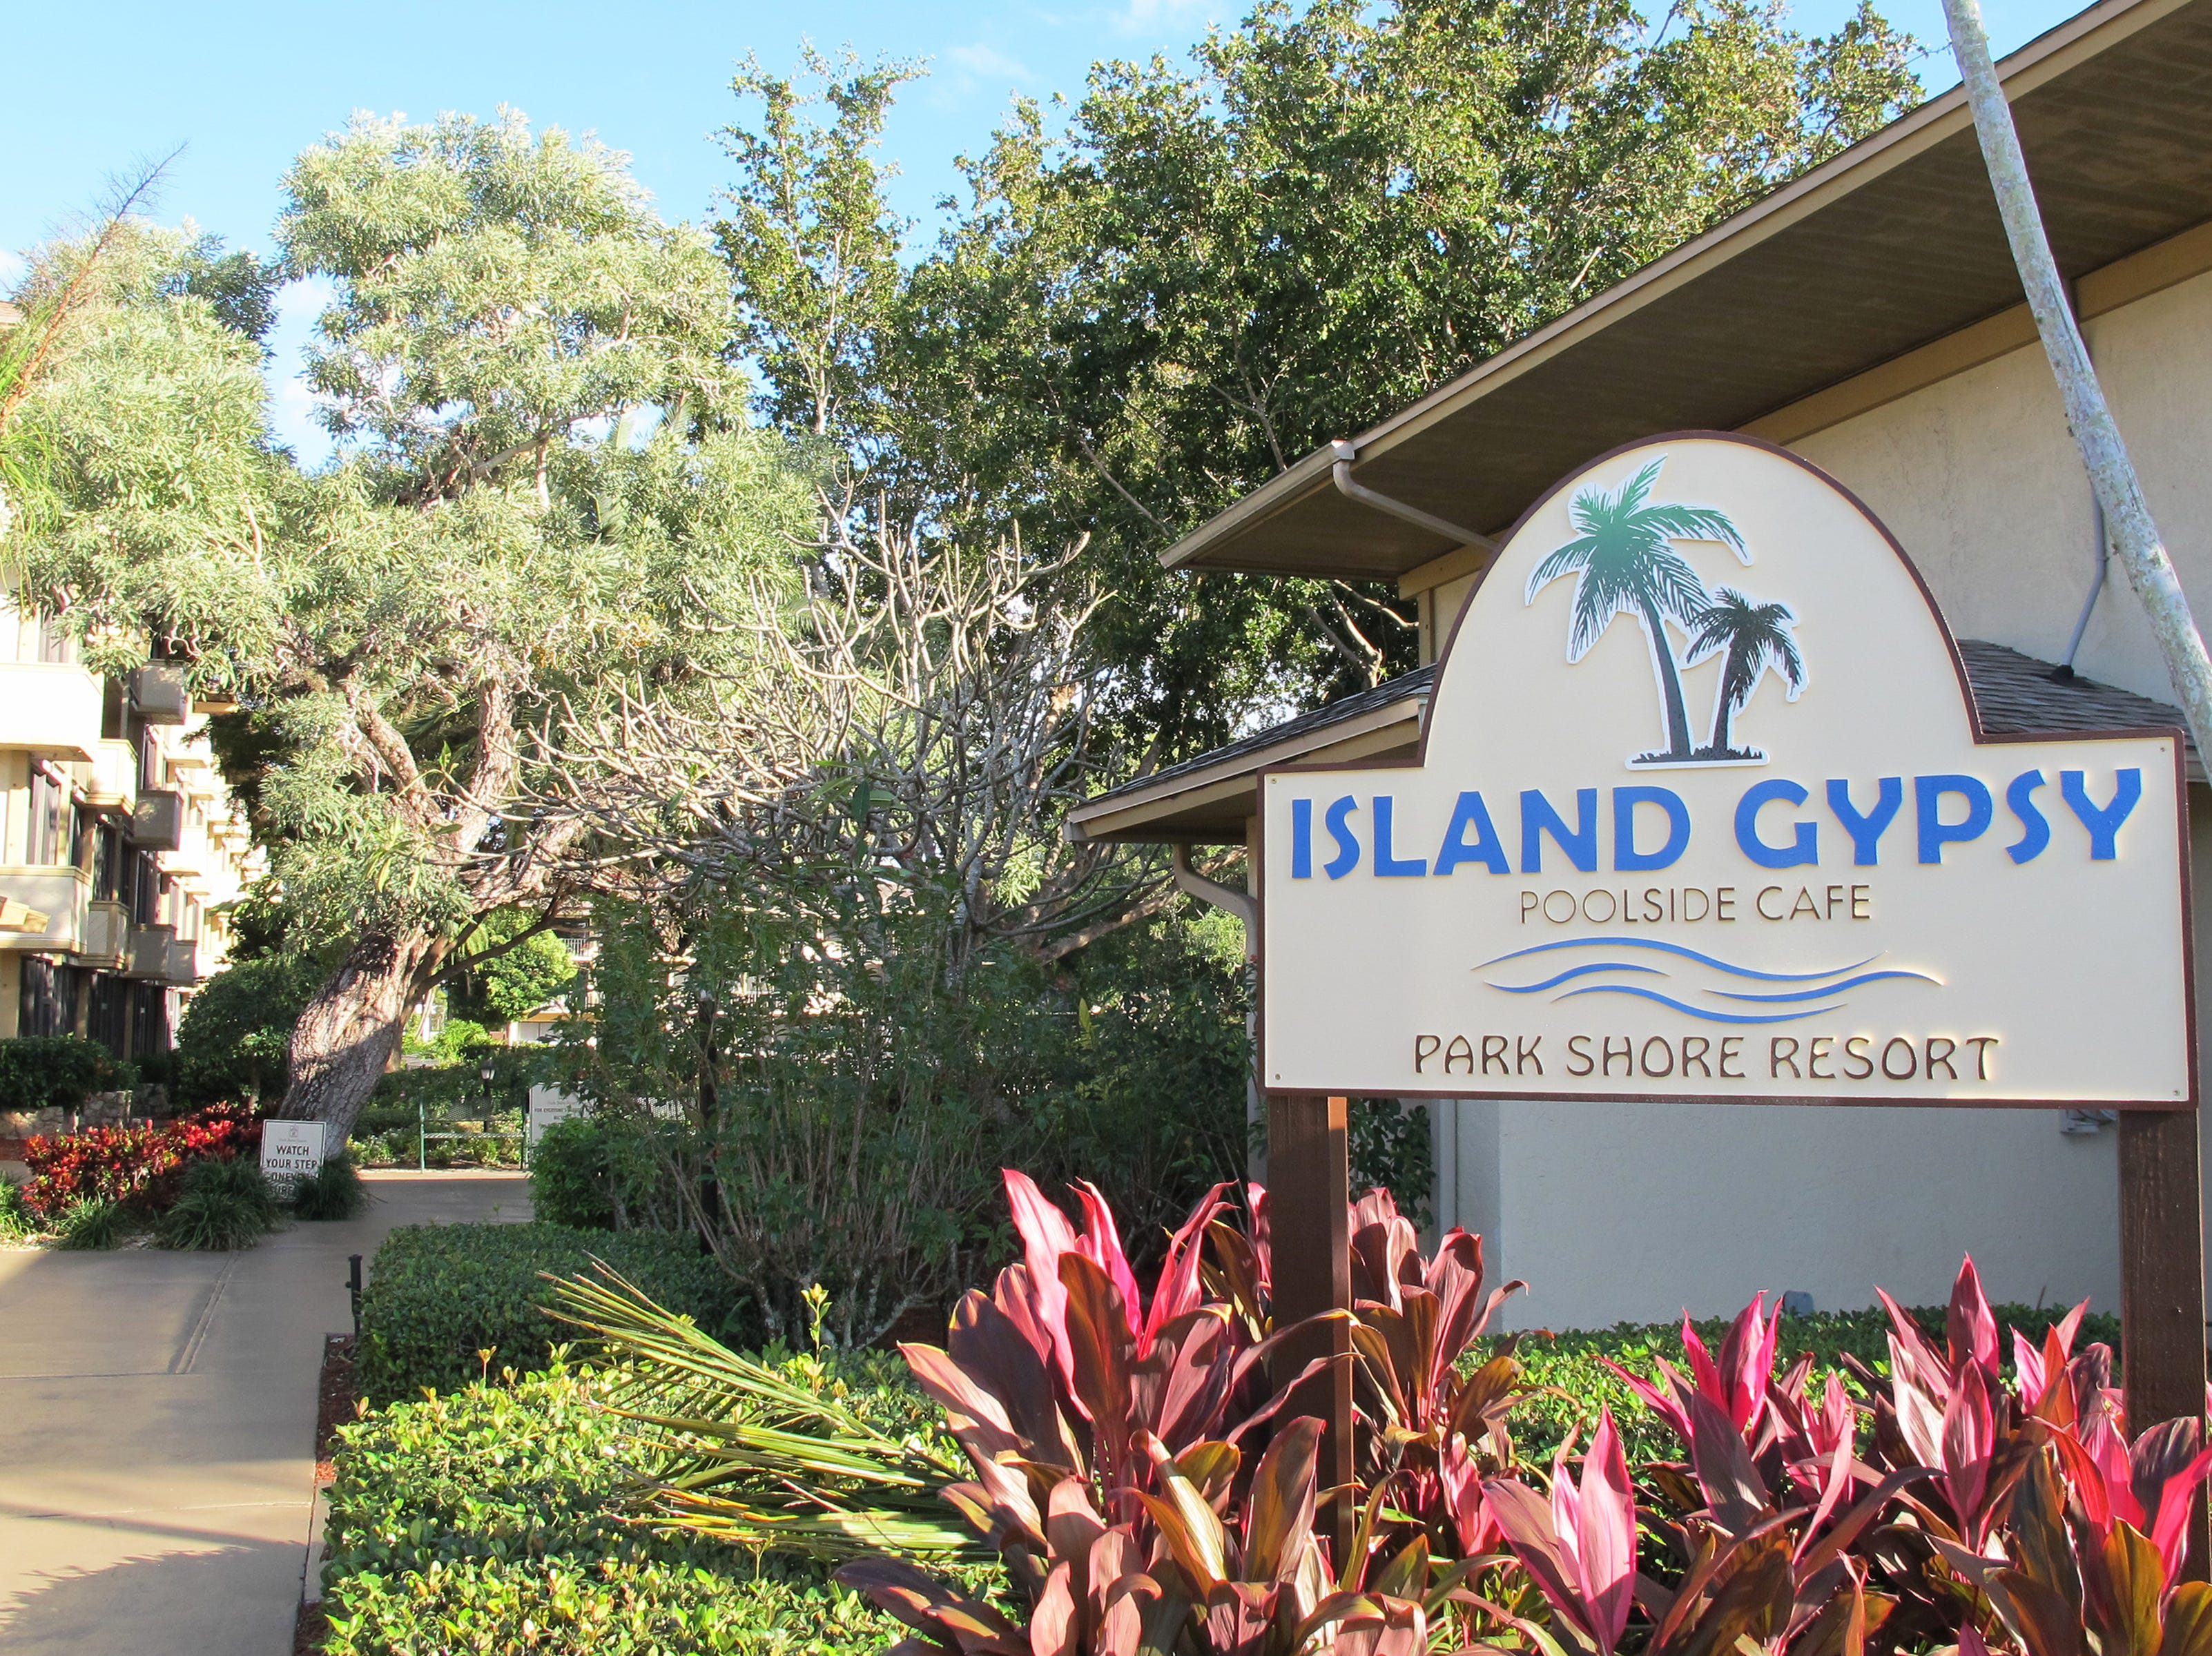 The new Island Gypsy Poolside Cafe is targeted to open in January 2019 in a space that most recently had been Pate's Island Club at Park Shore Resort in Naples.